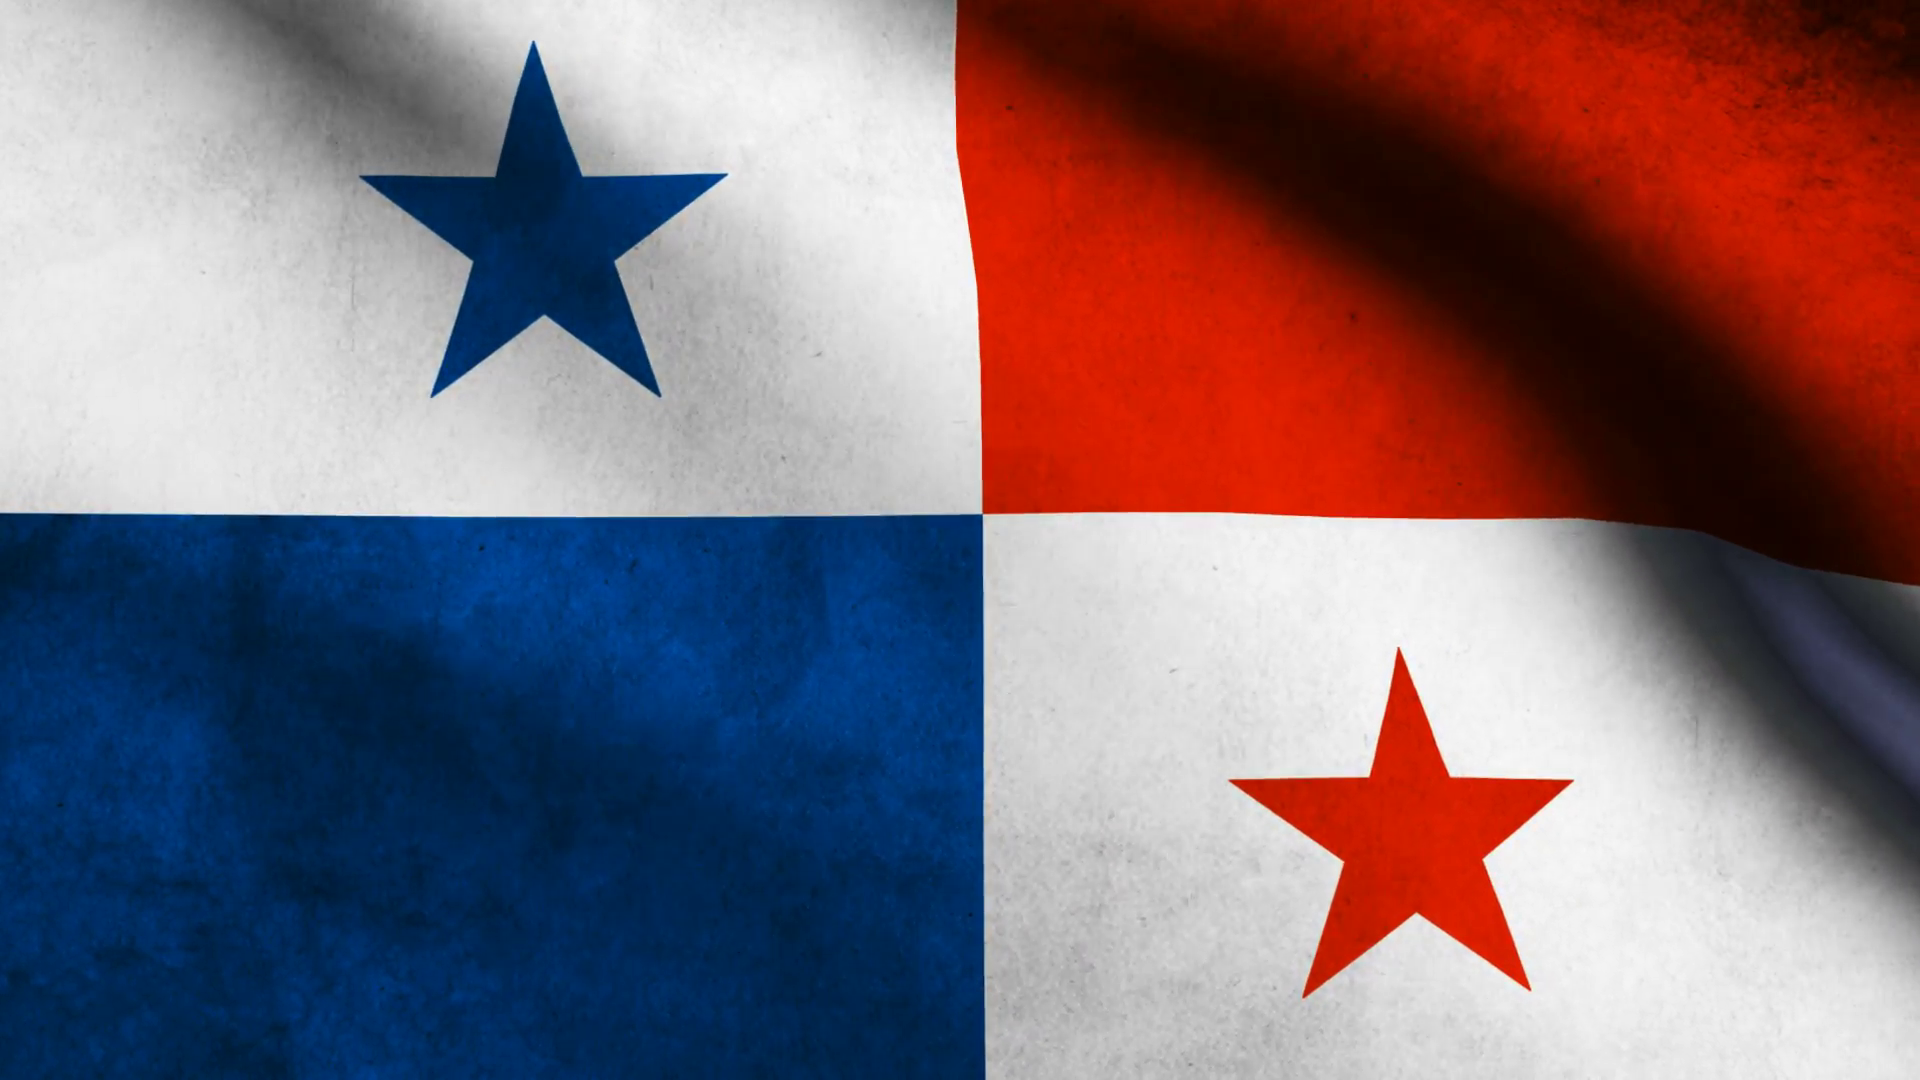 Animation of Panama country flag Motion Background   Storyblocks Video 1920x1080